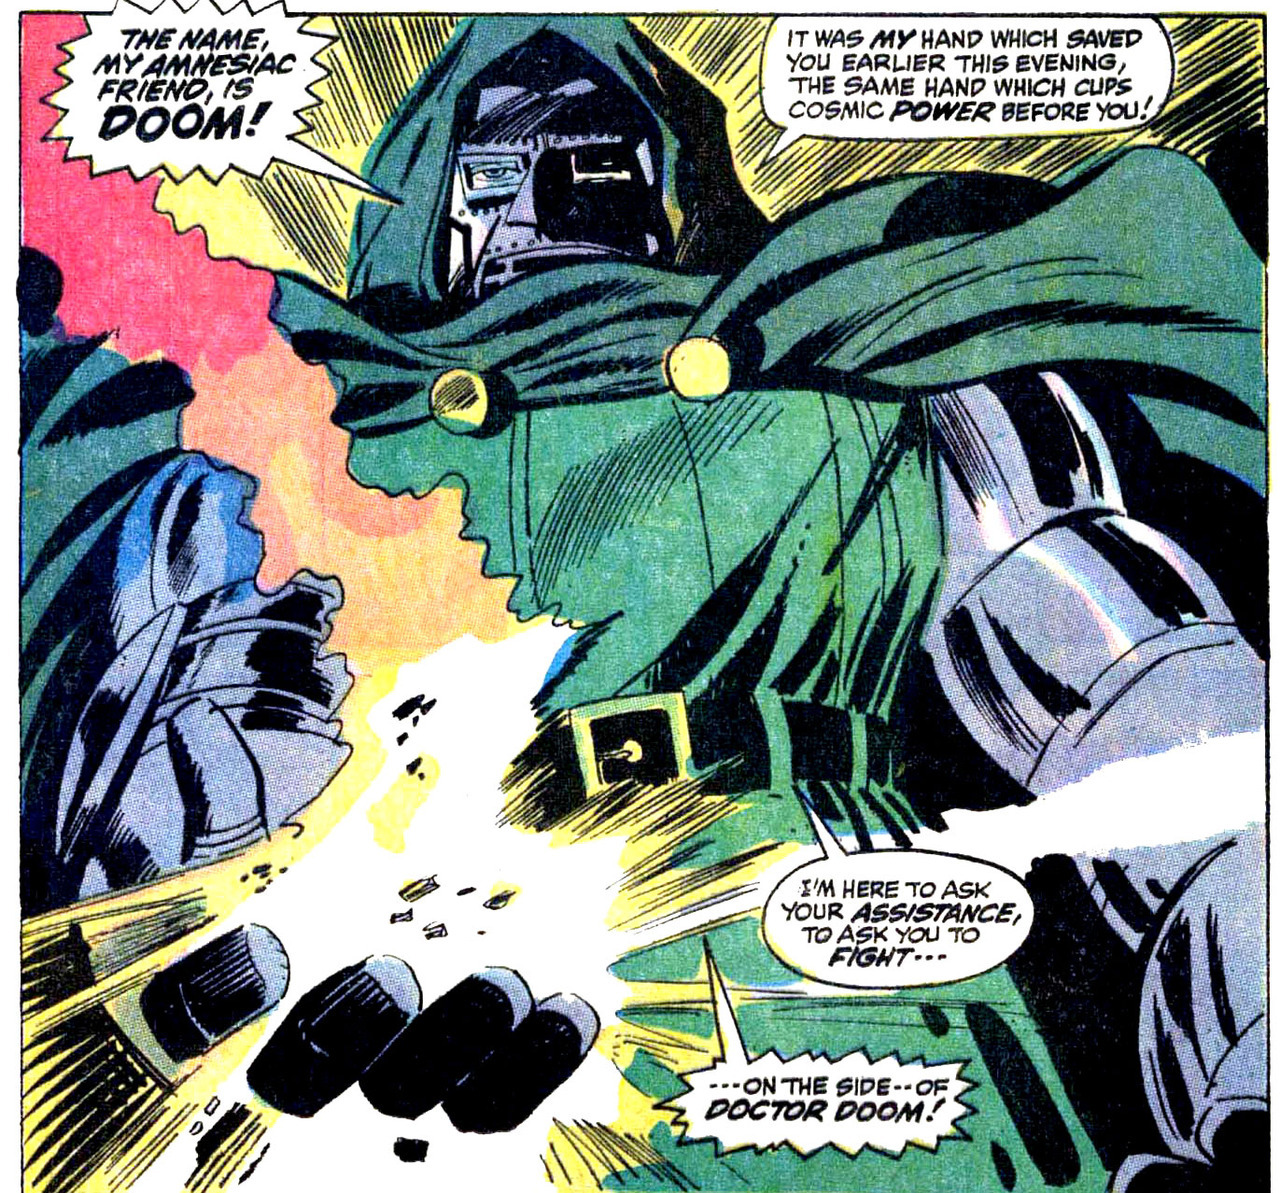 Fight on the side of Doctor Doom!